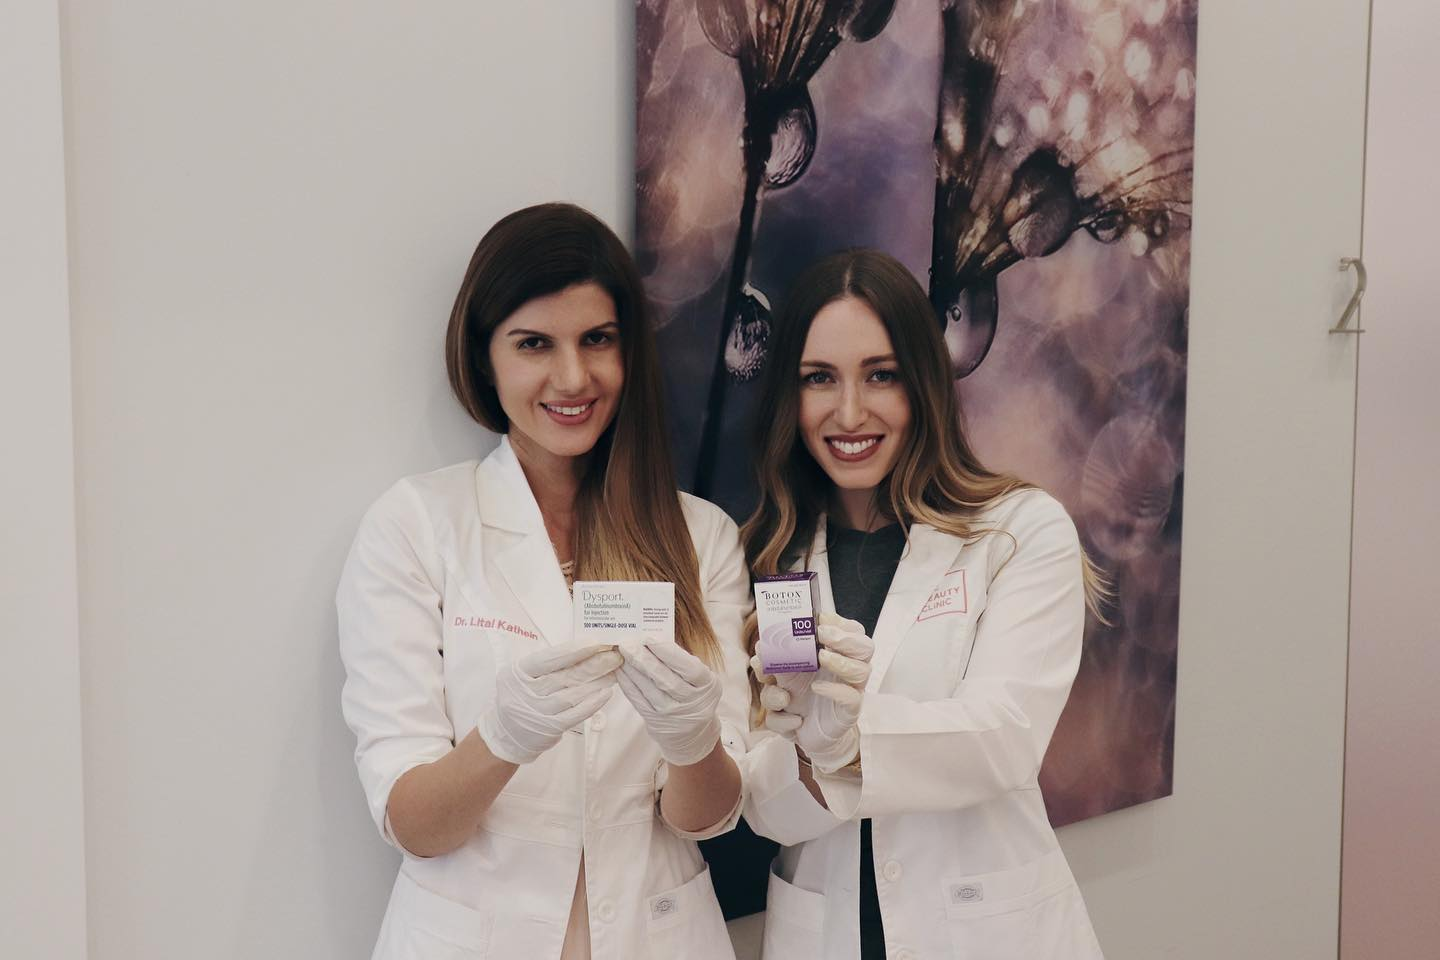 The Beauty Clinic Botox or Dysport?